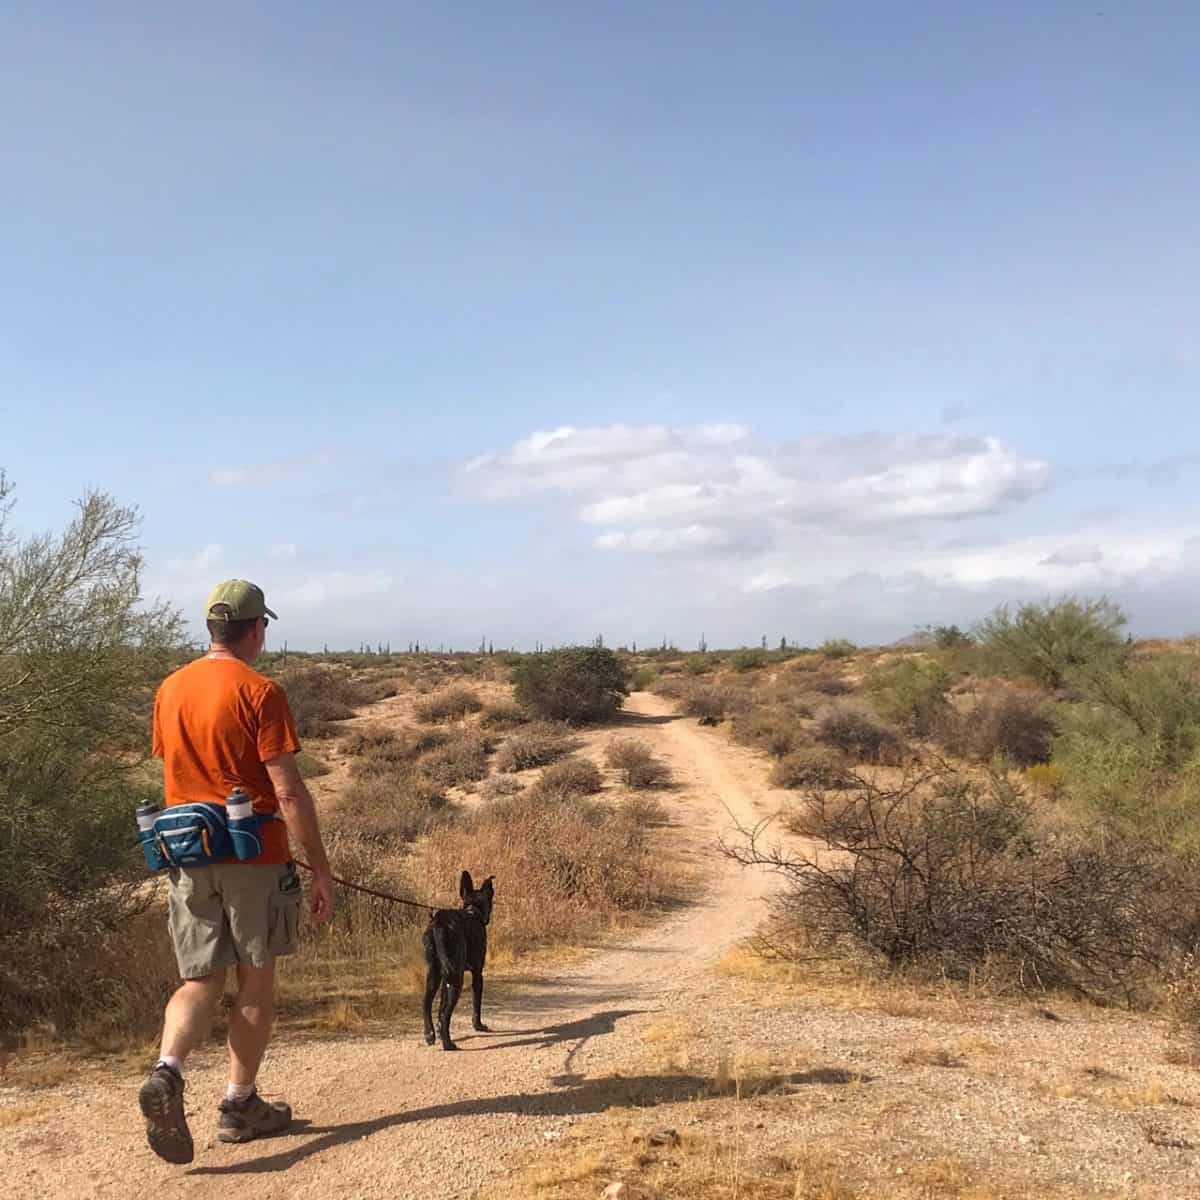 Pet Friendly Camping Near Phoenix – McDowell Mountain Regional Park